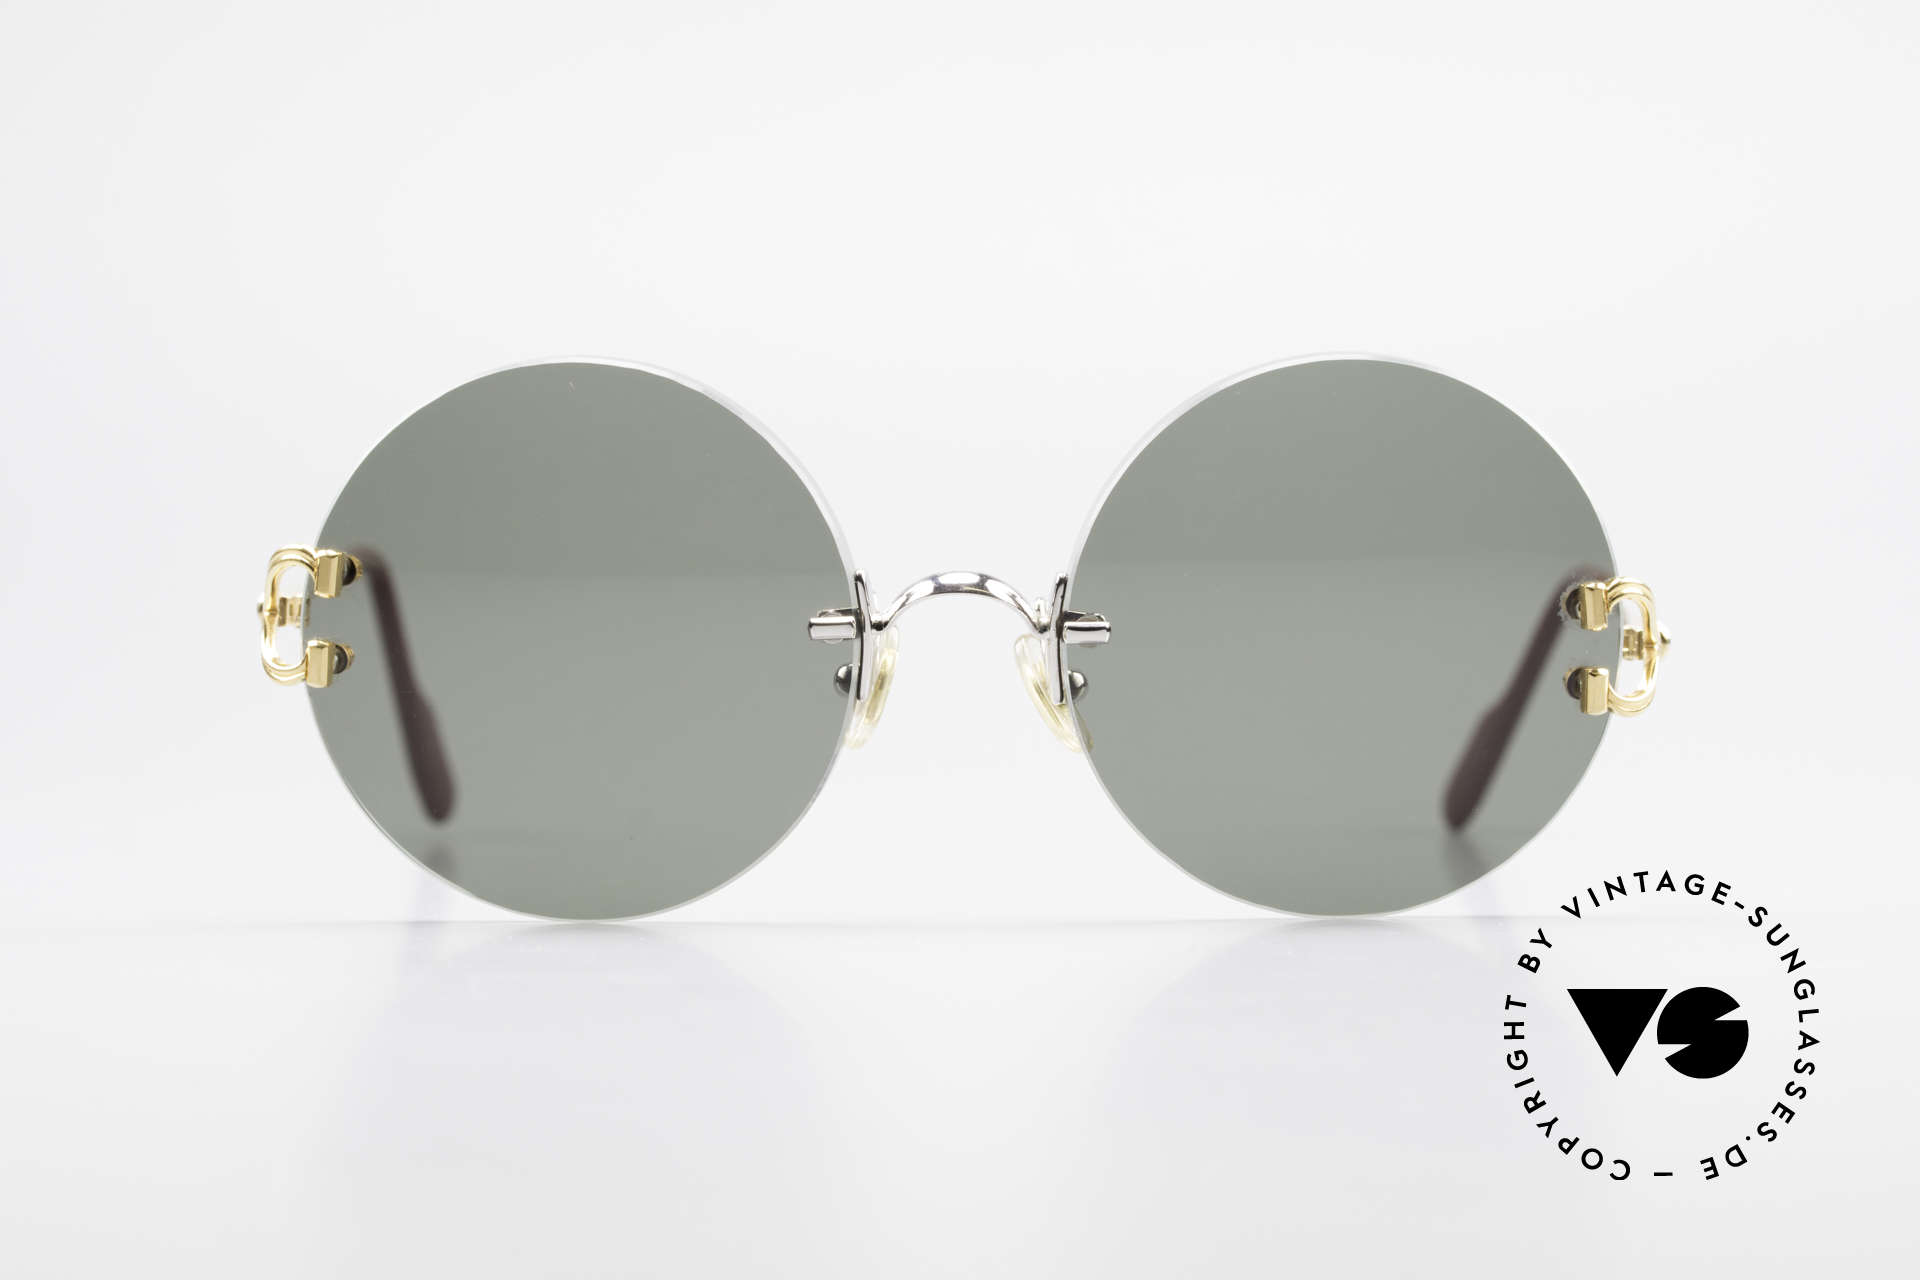 Cartier Madison Round Customized Sunglasses, precious round designer shades; 22ct GOLD-PLATED, Made for Men and Women